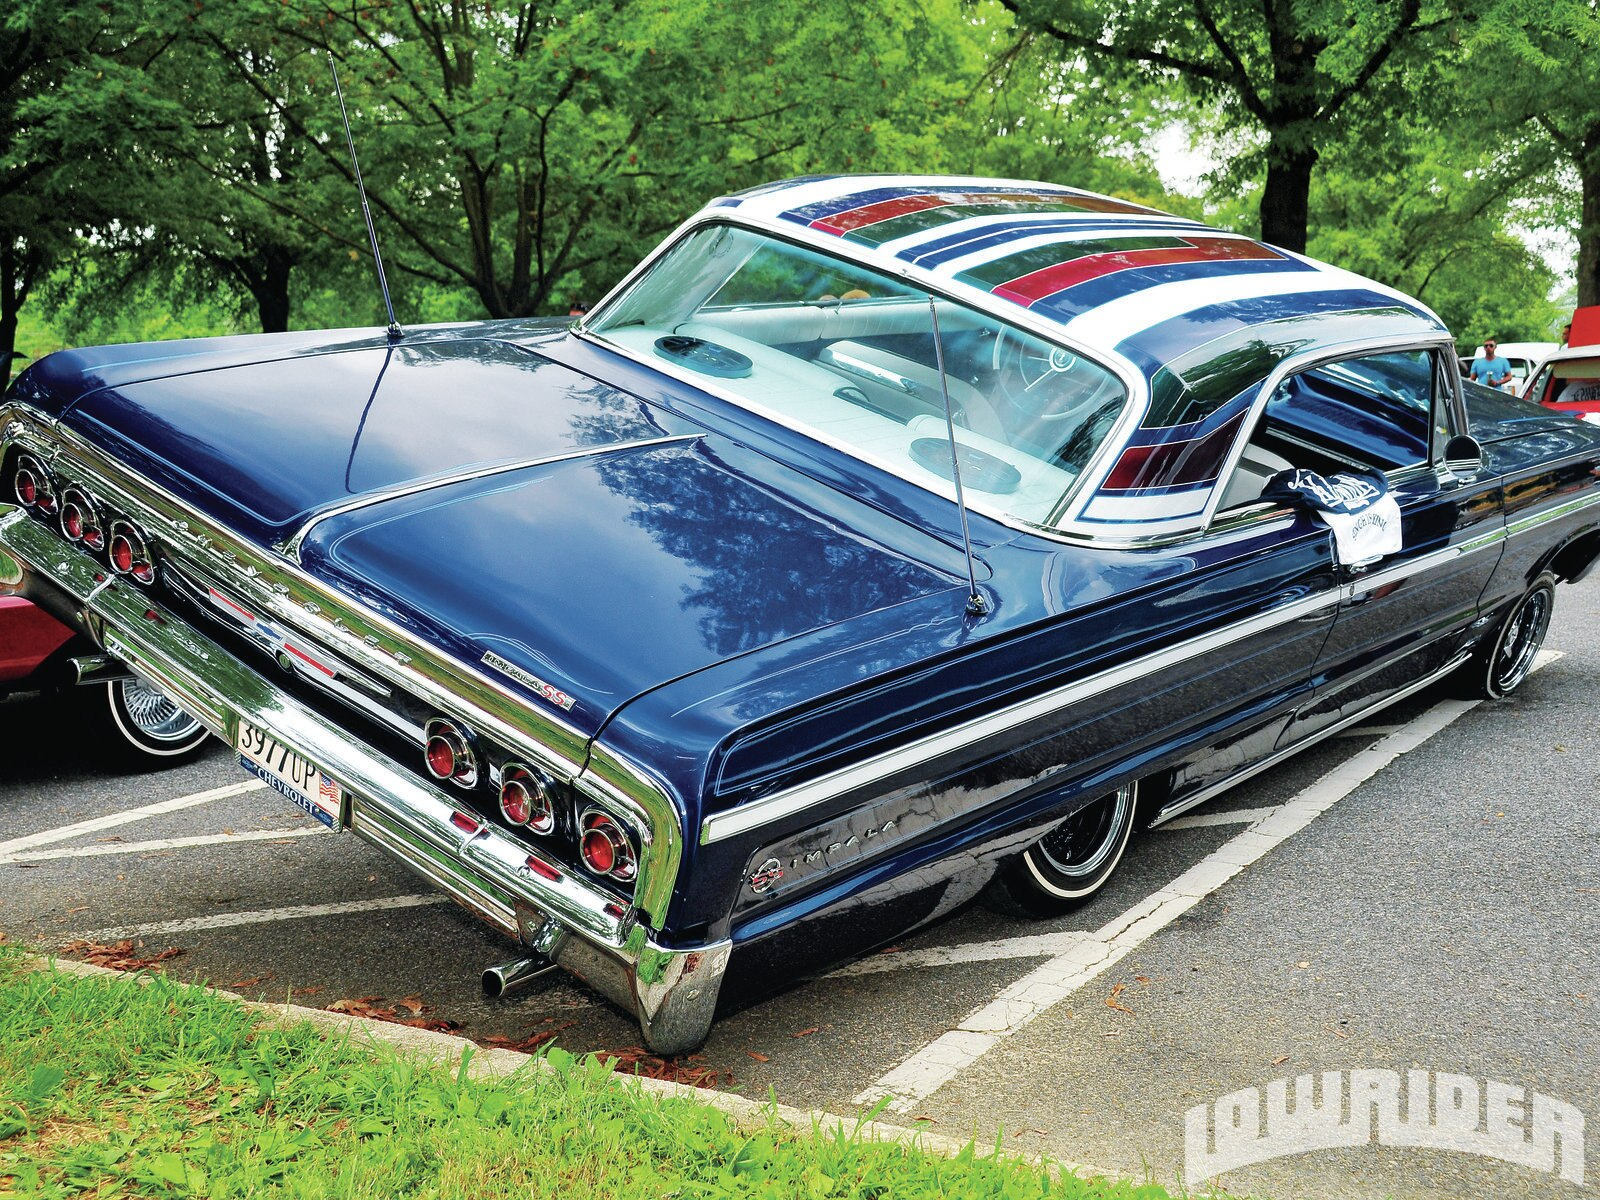 1202-lrmp-01-o-just-klownin-car-club-show-picnic-impala1